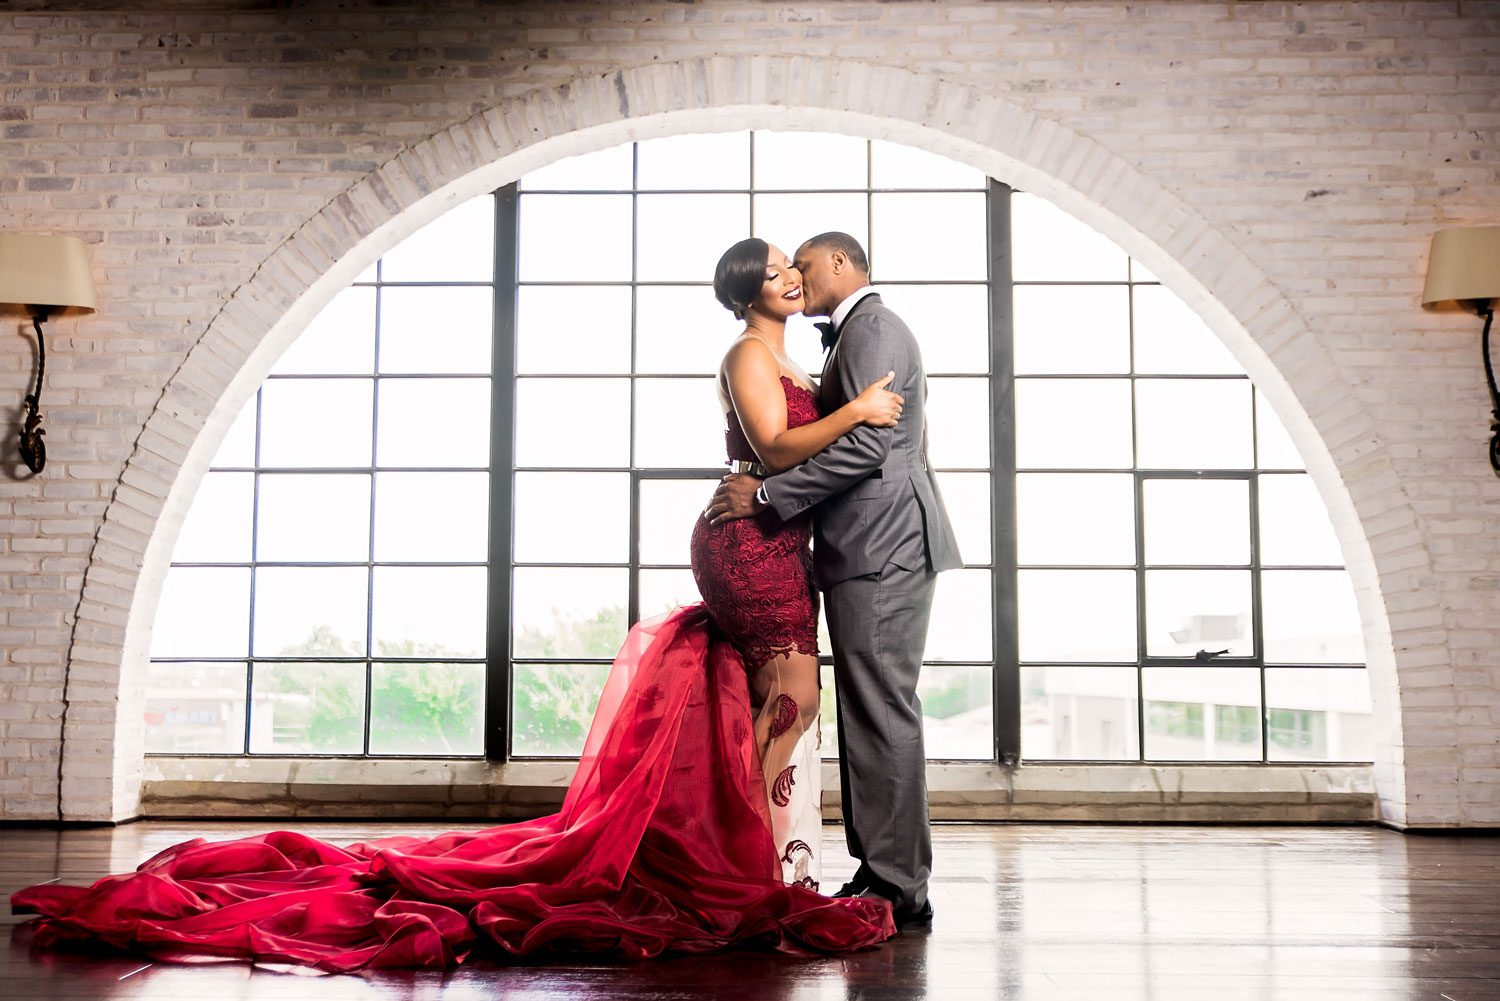 Pharris Photos featured on Inside Weddings